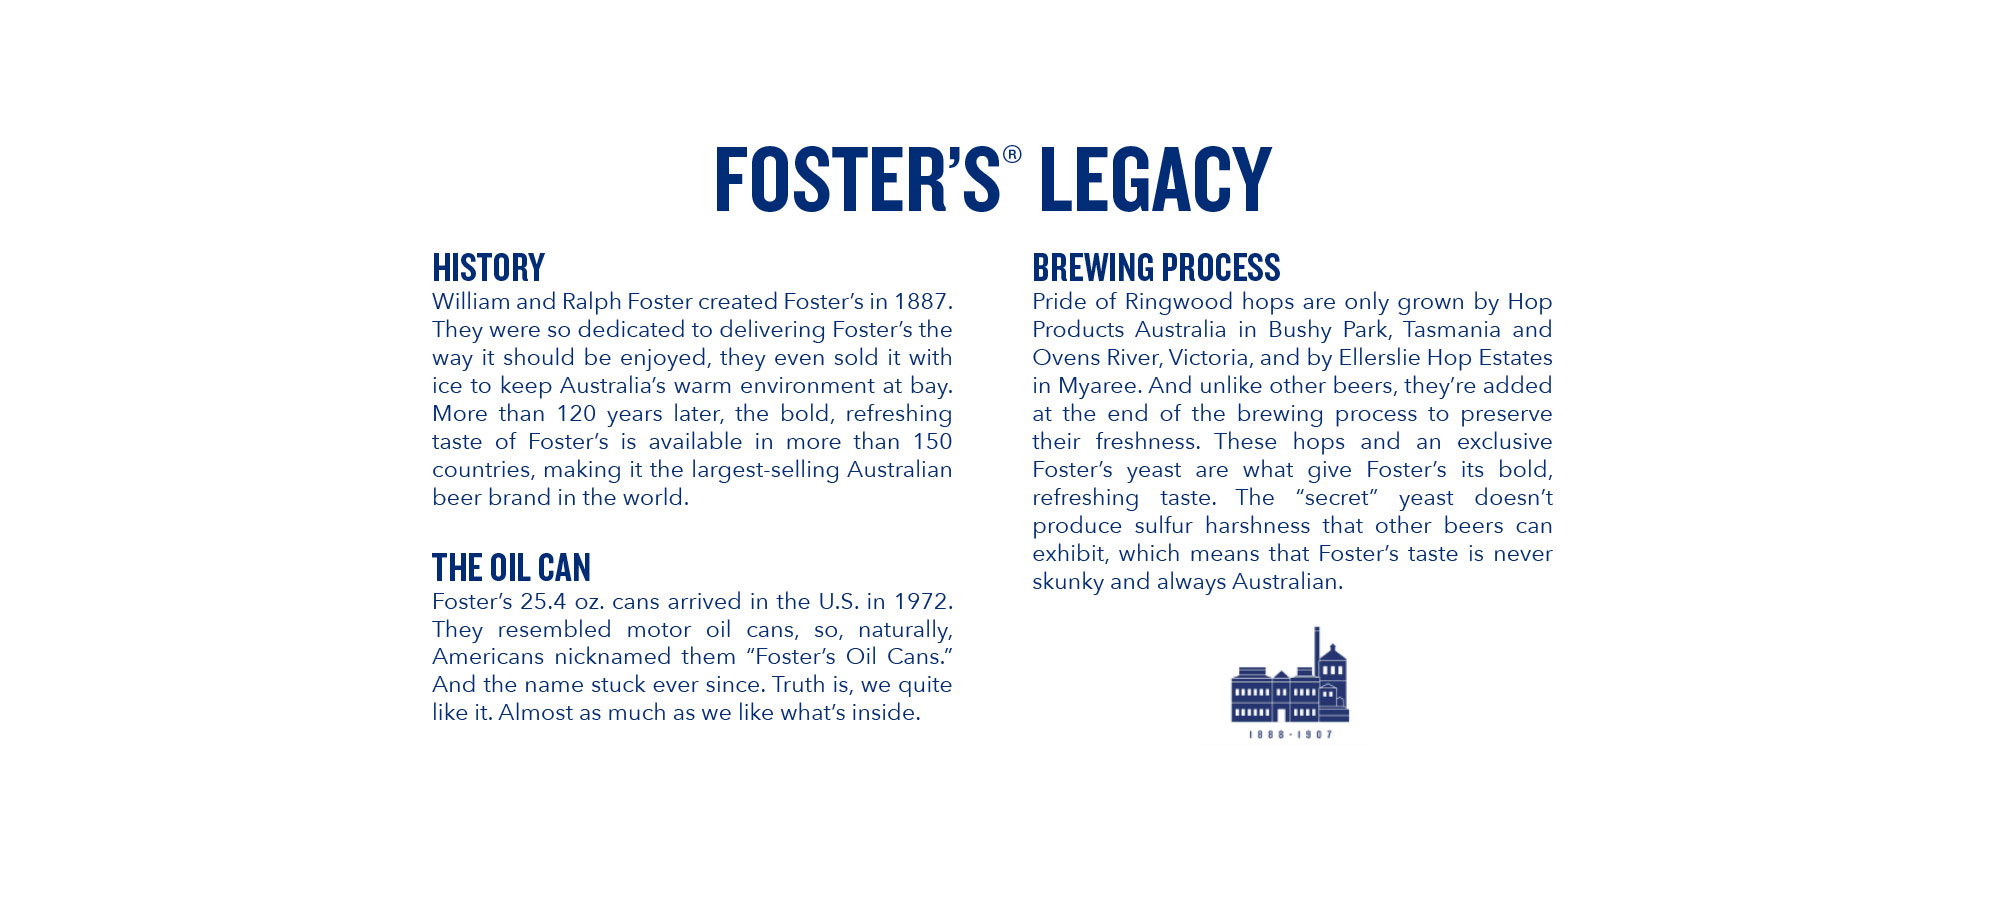 Foster's Legacy